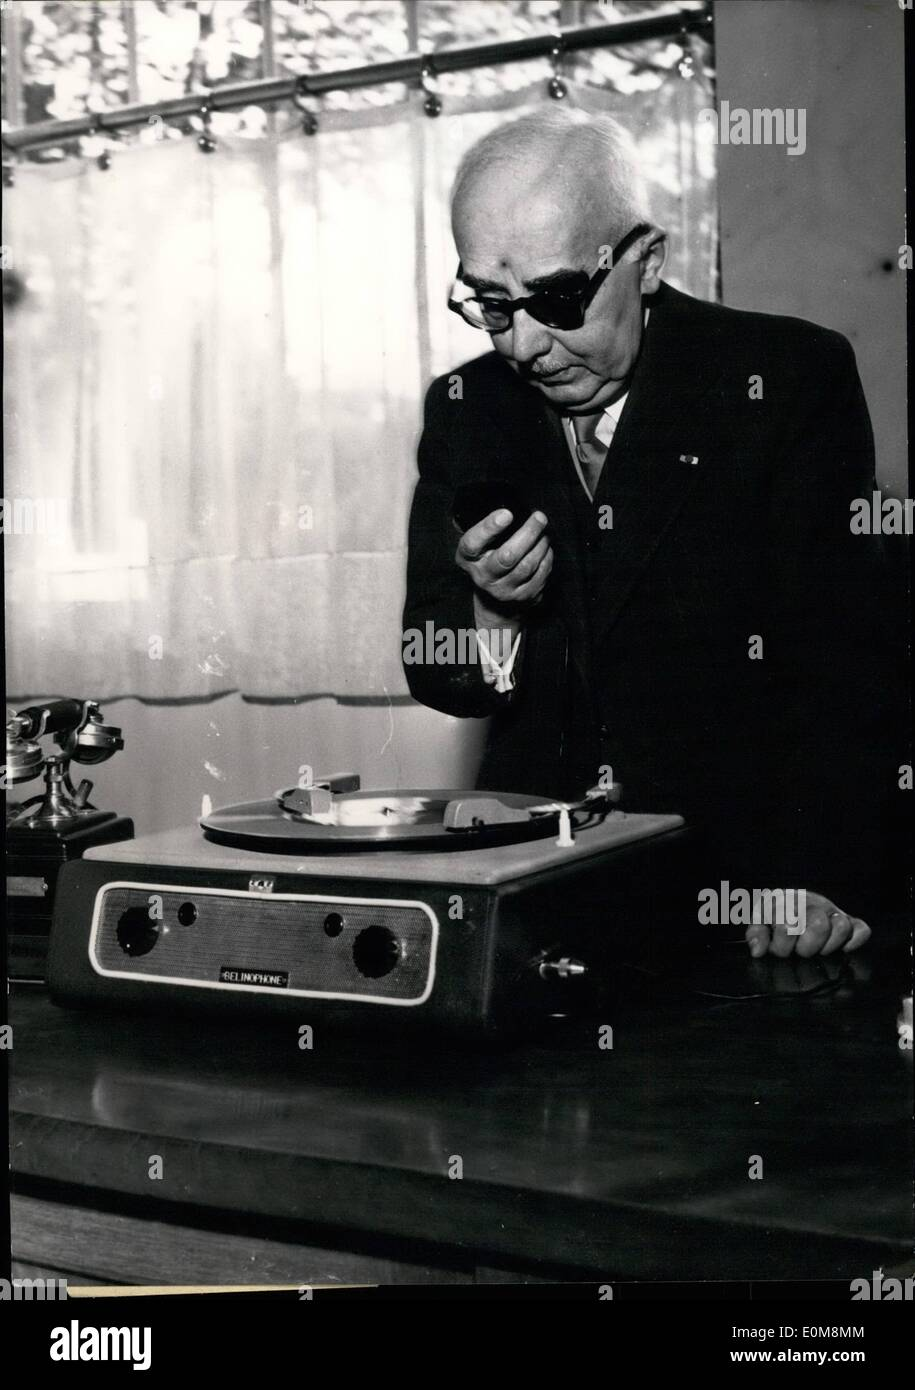 Feb. 02, 1954 - Here is the Belinophone: M. Edourd Belin, Sponsor of the ''Bilinographe''(telephoto device) presents now a new gadget: ''Beliophone'' designed for recording Telephone conversations in case the addressee is absent. Mr. Belin who is now 80 and the Belinophone. - Stock Image